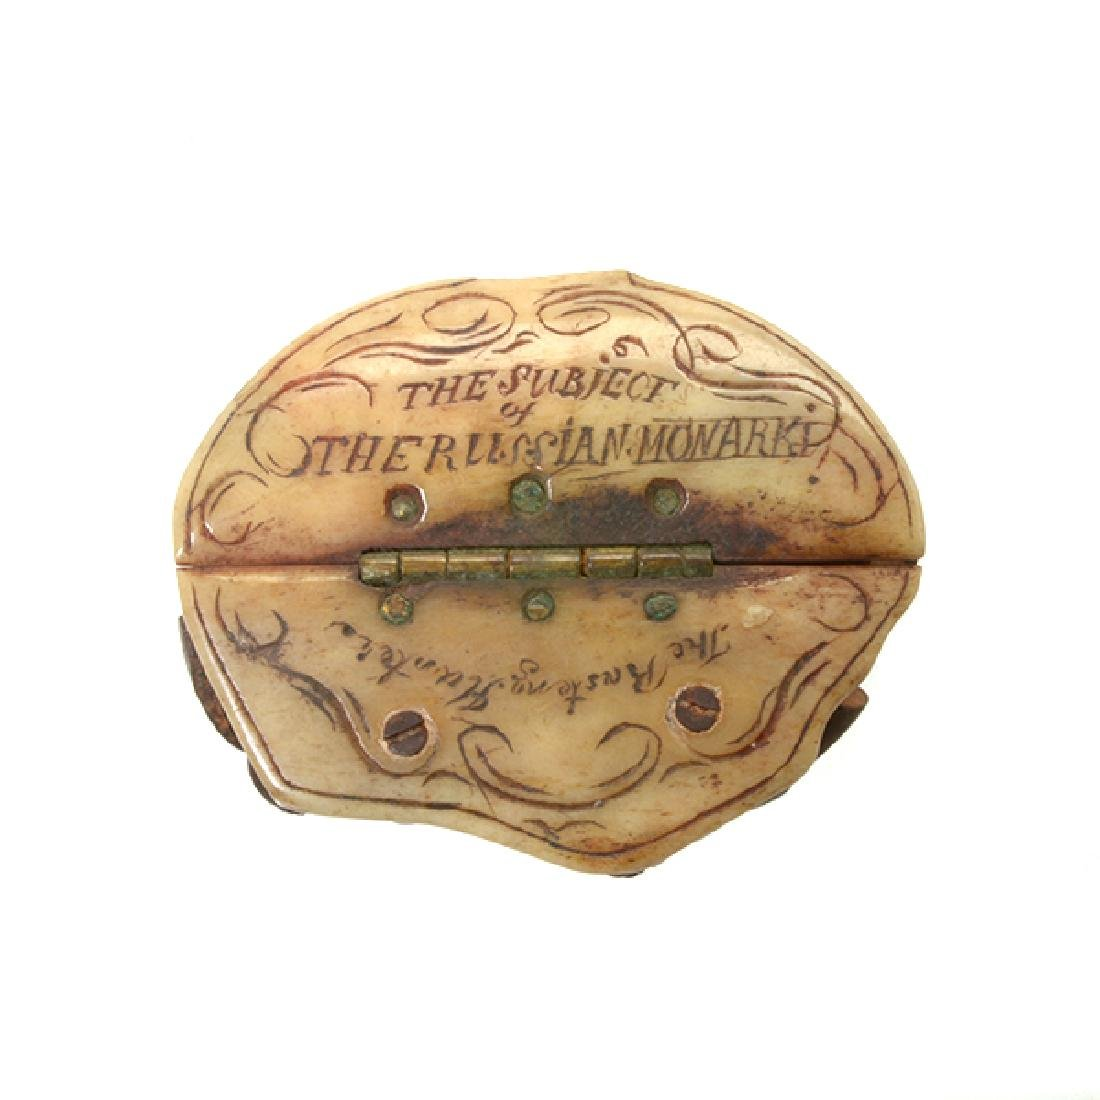 European Dog Form Snuff Box with Polychromed Plaque of - 5